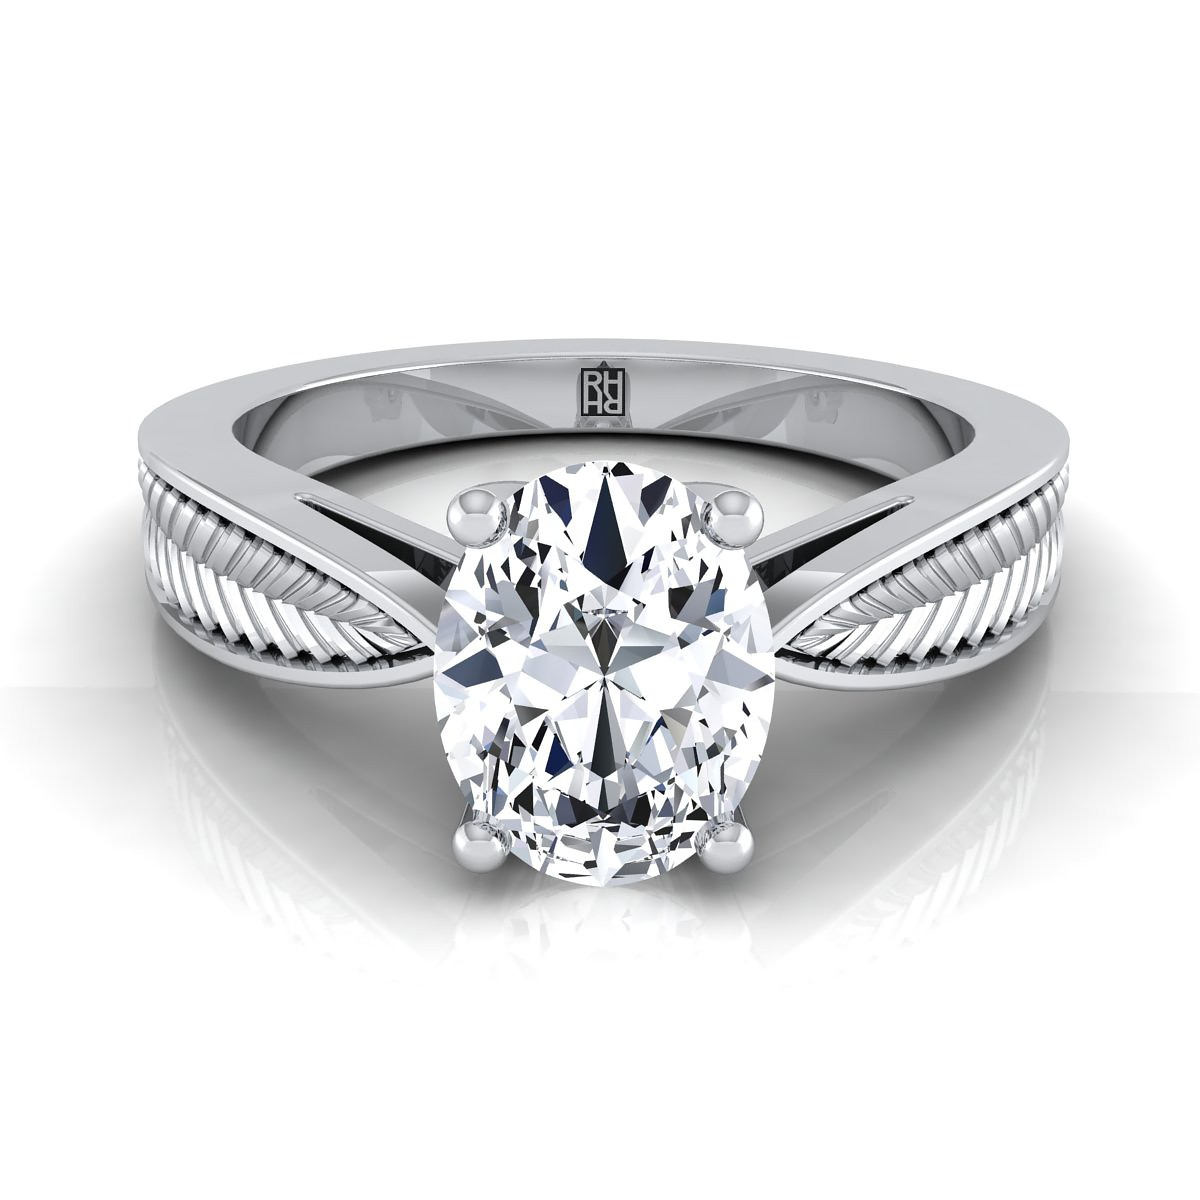 Classic 4 Prong Oval Diamond Engagement Ring With Leaf Texture Design In  14k White Gold